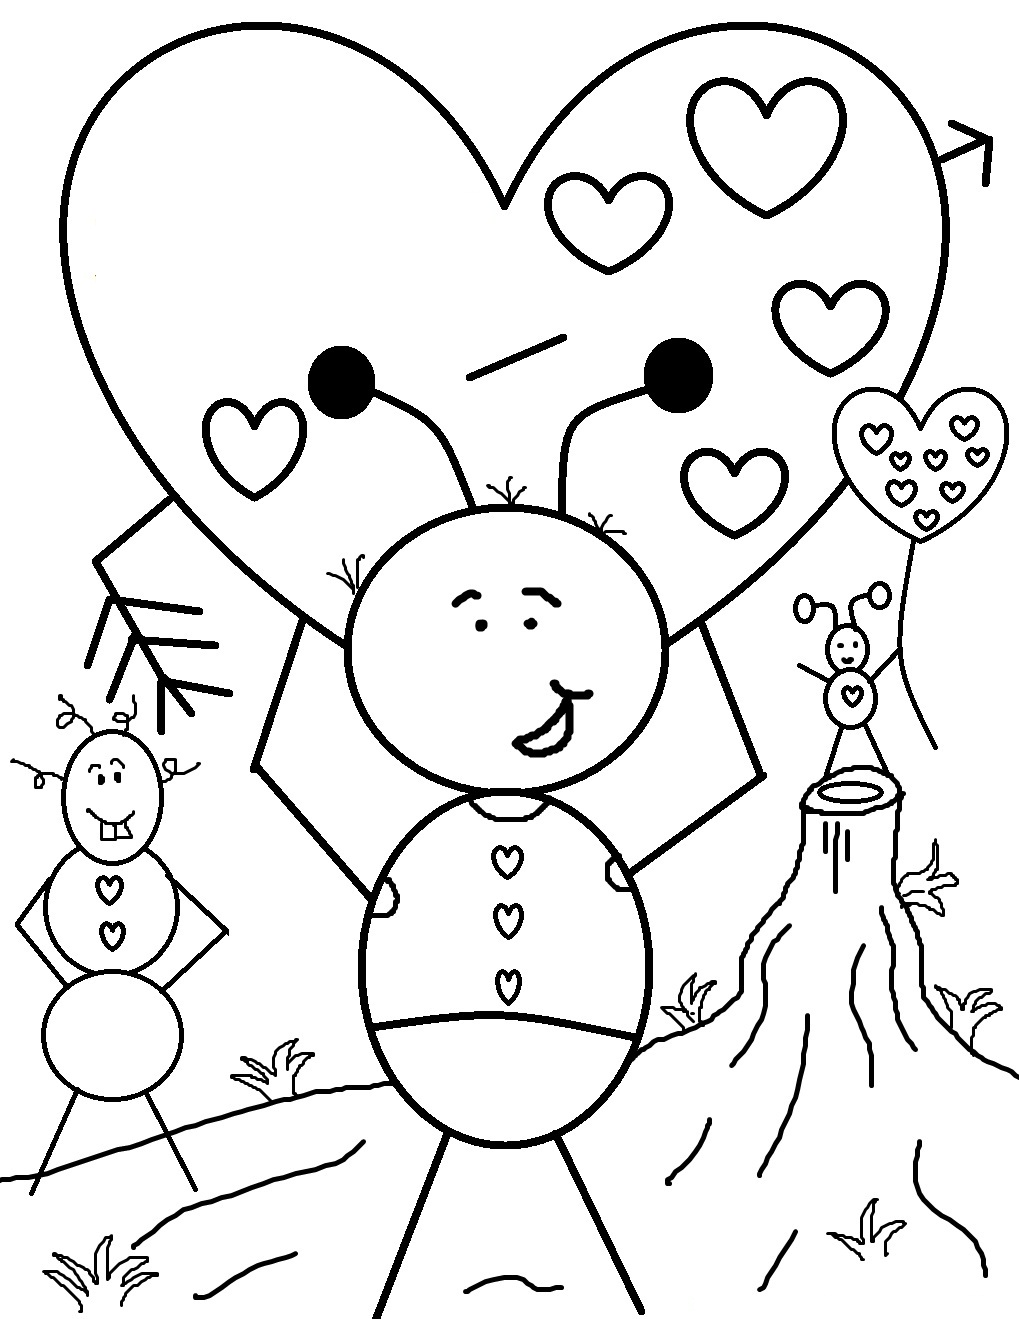 kids coloring pages valentines - photo#8